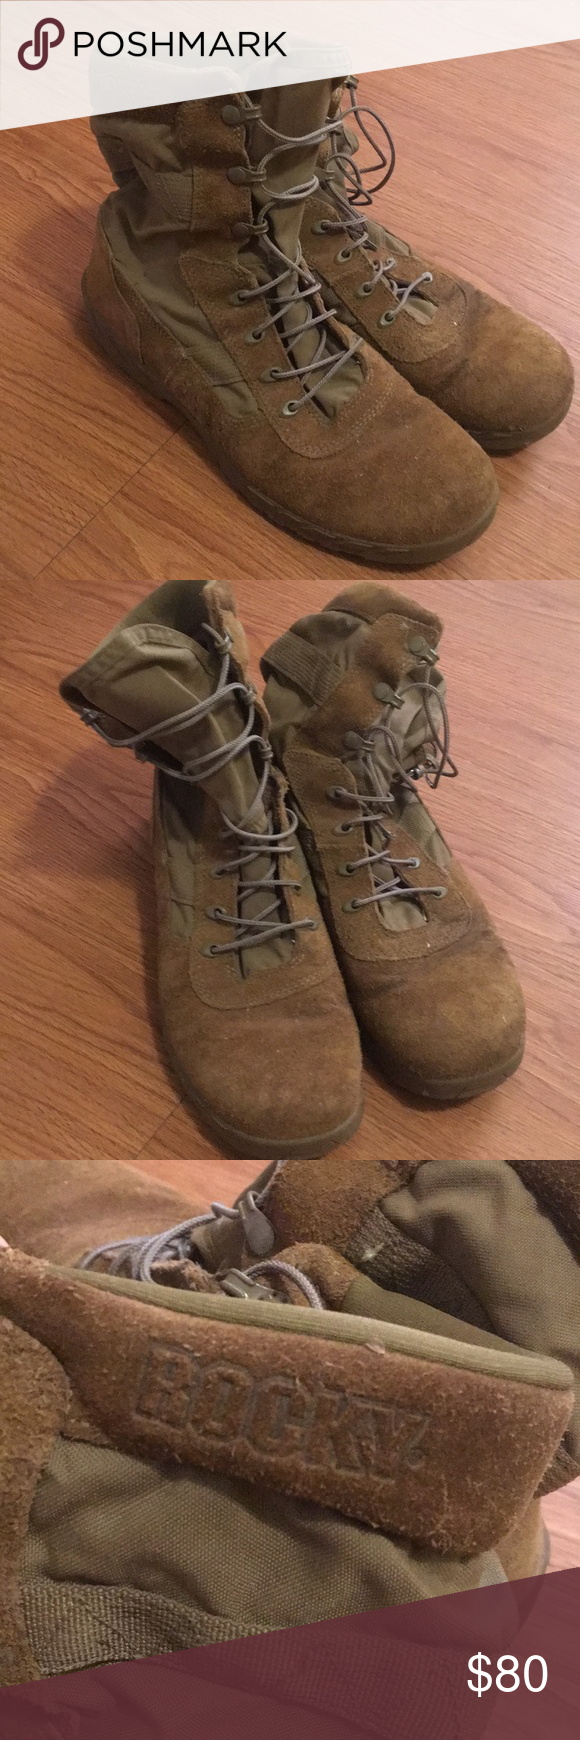 Rocky C7 Military Boots Rocky C7 Military Boots Size 11 Coyote Brown Ar 670 1 Compliant Super Lightweight Too Big For Me Boots Military Boots Shoe Boots